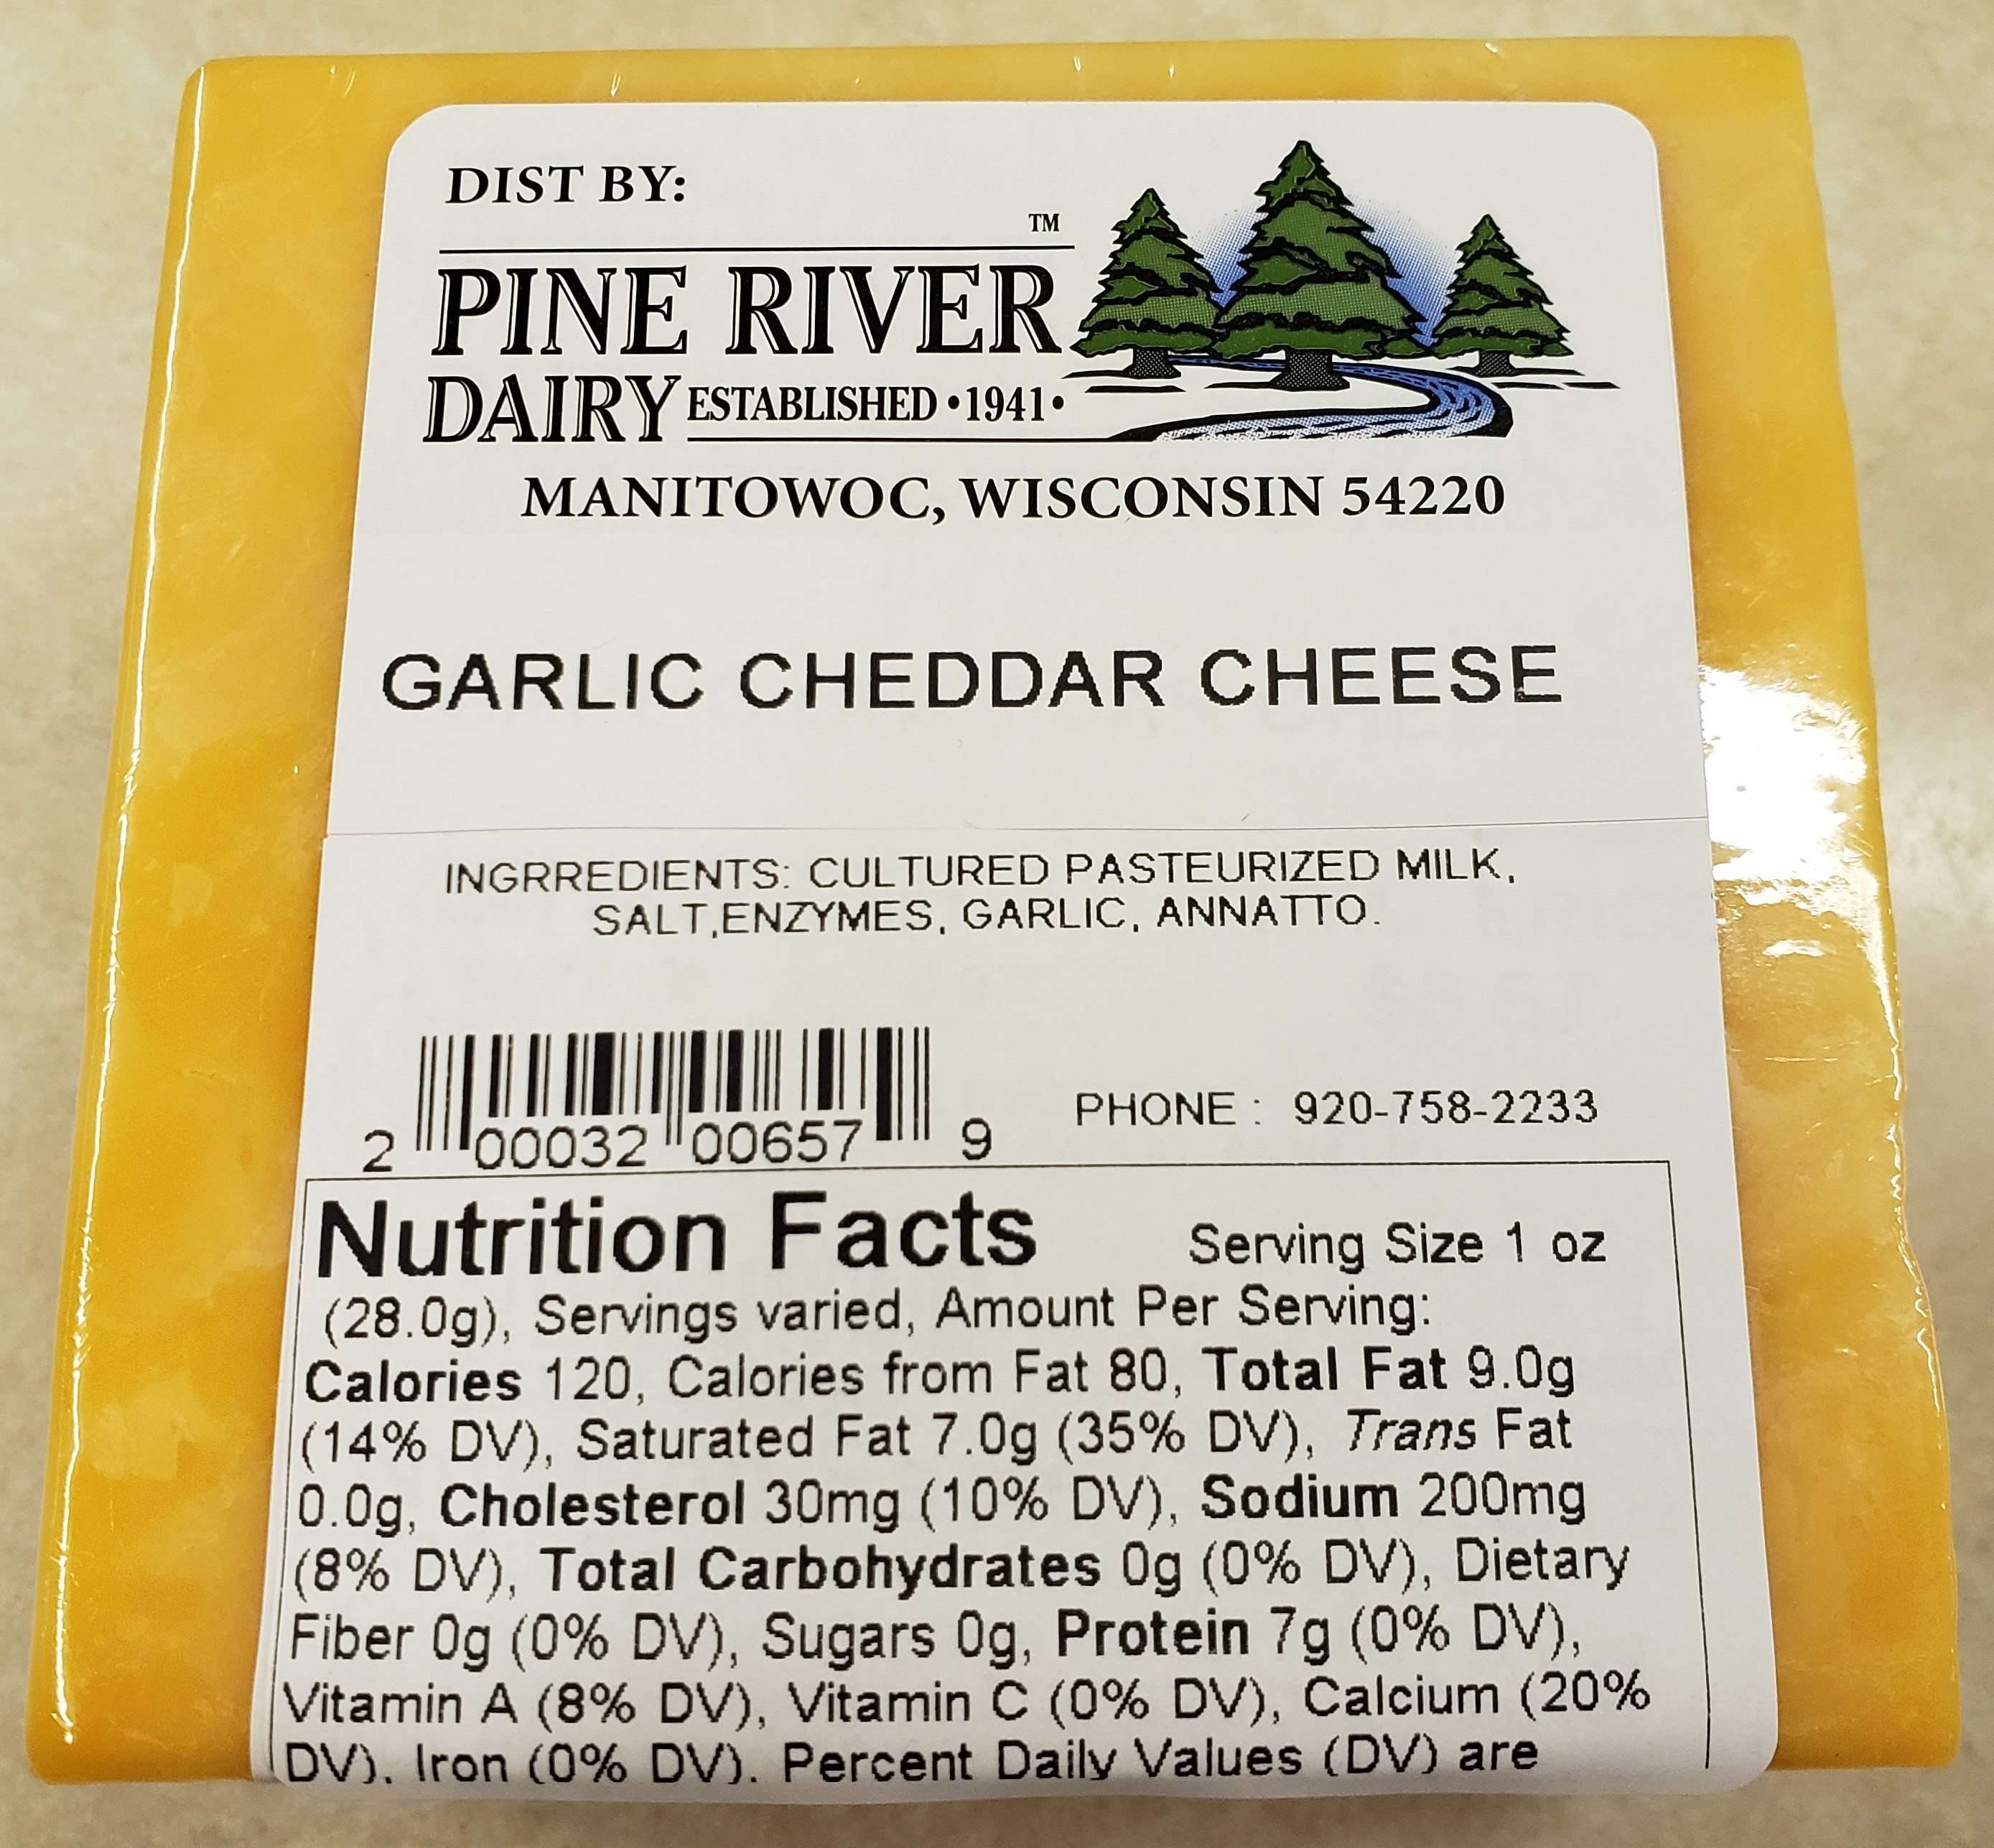 Garlic Cheddar Cheese